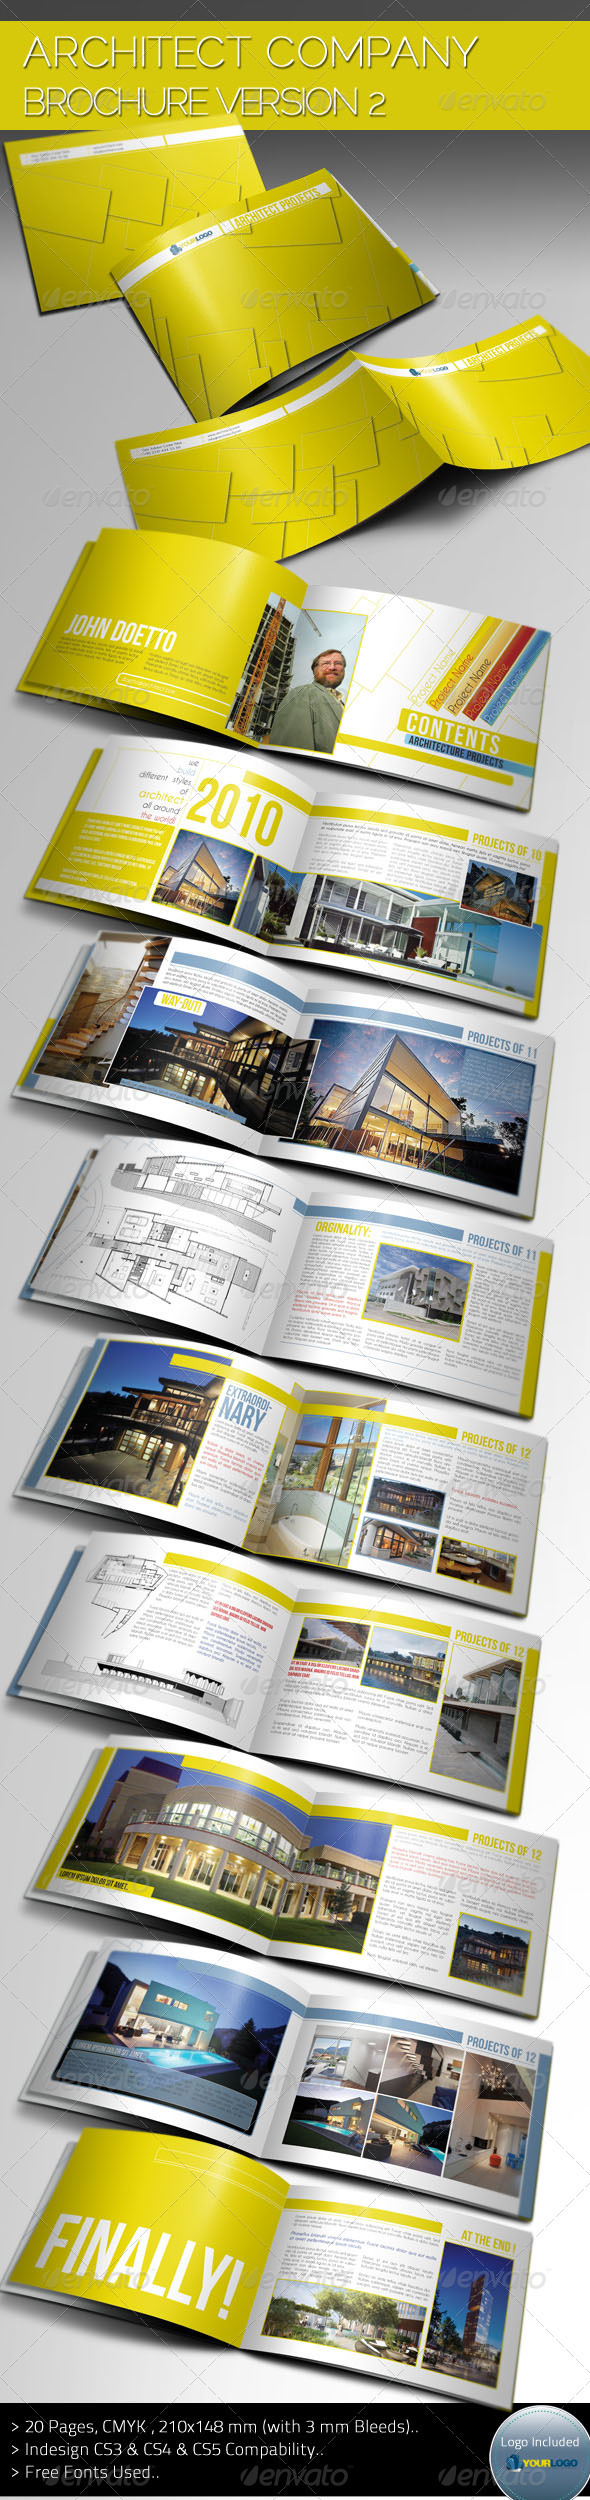 Architecture Brochure Template Ver.II by balkay | GraphicRiver